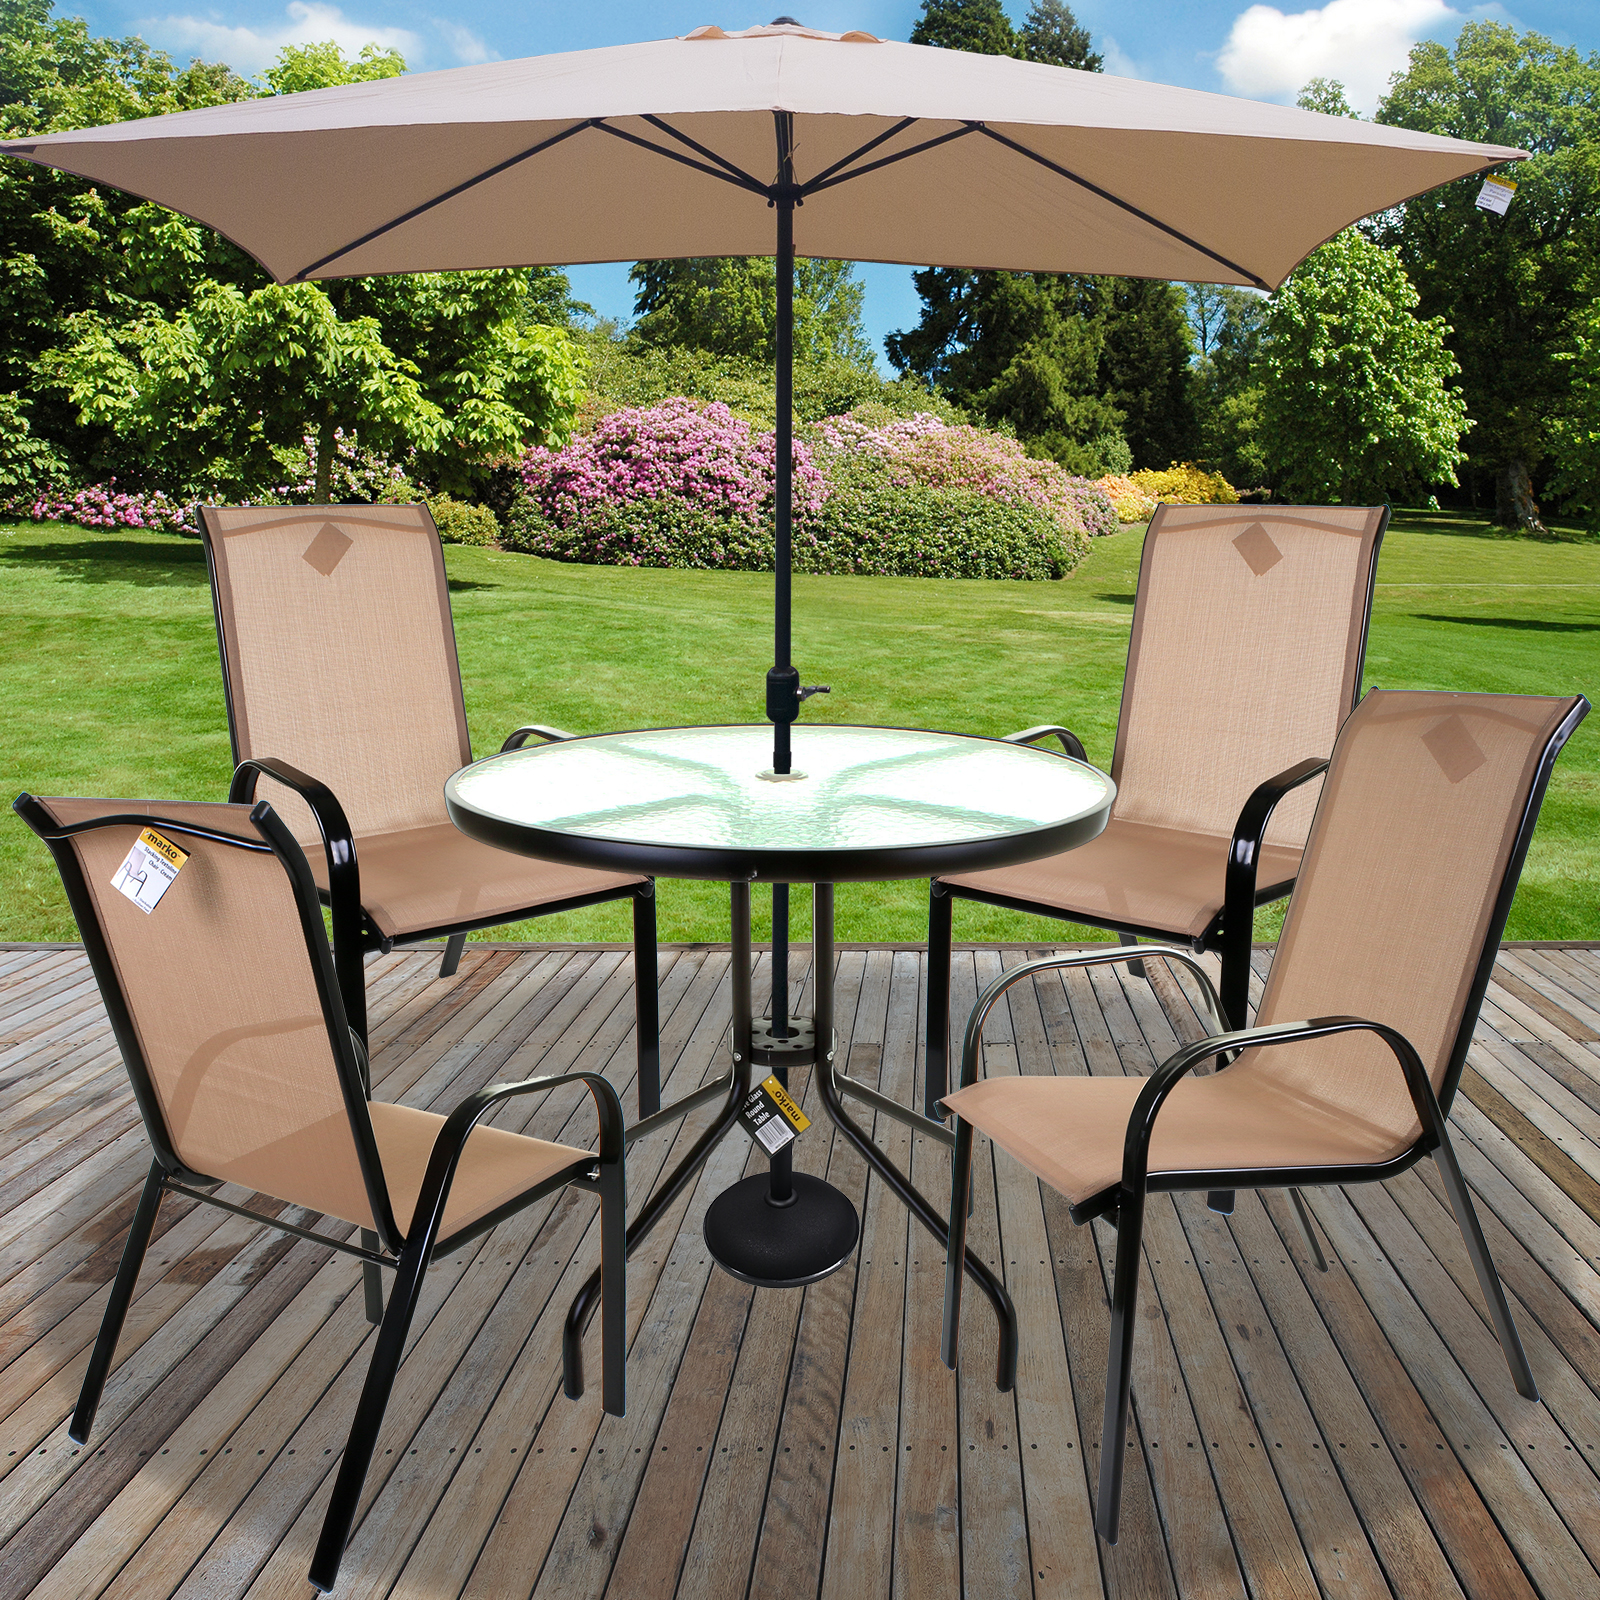 Details About Table Chairs Set Outdoor Garden Patio Cream Furniture Gl Parasol Base